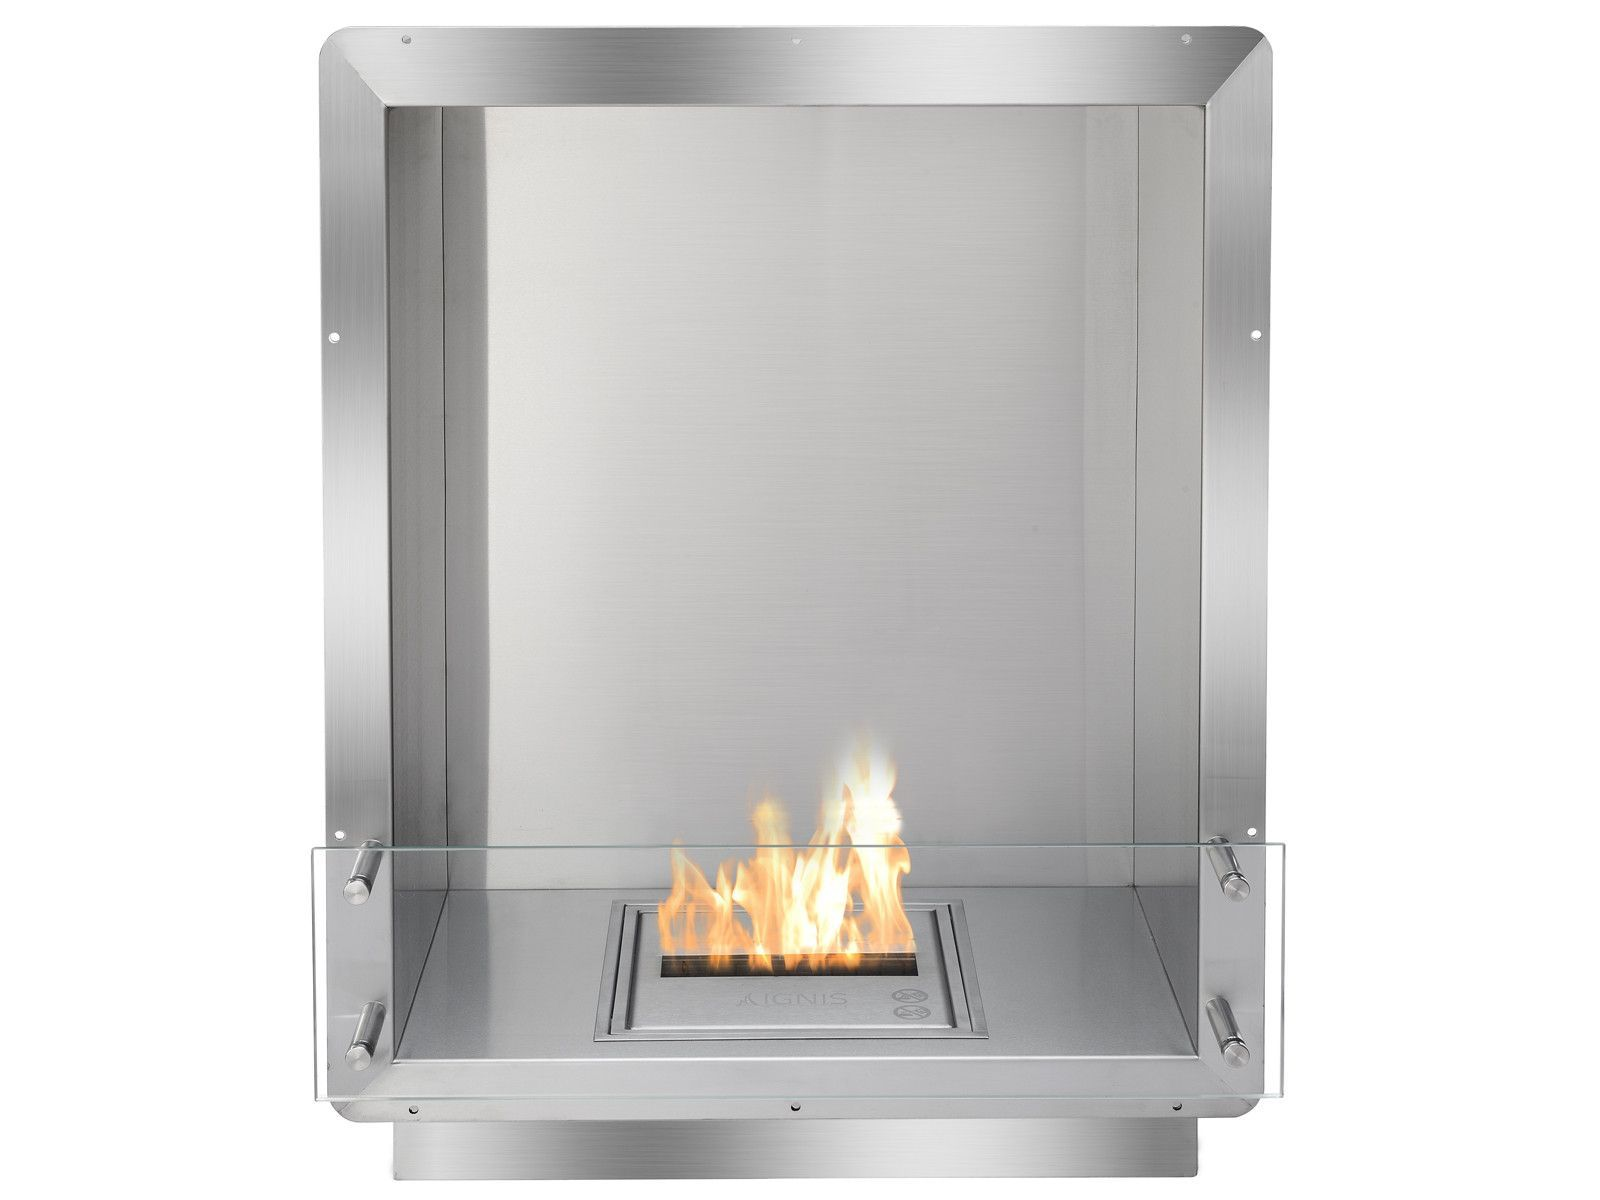 ignis ethanol firebox 28 built in single sided ventless fireplace